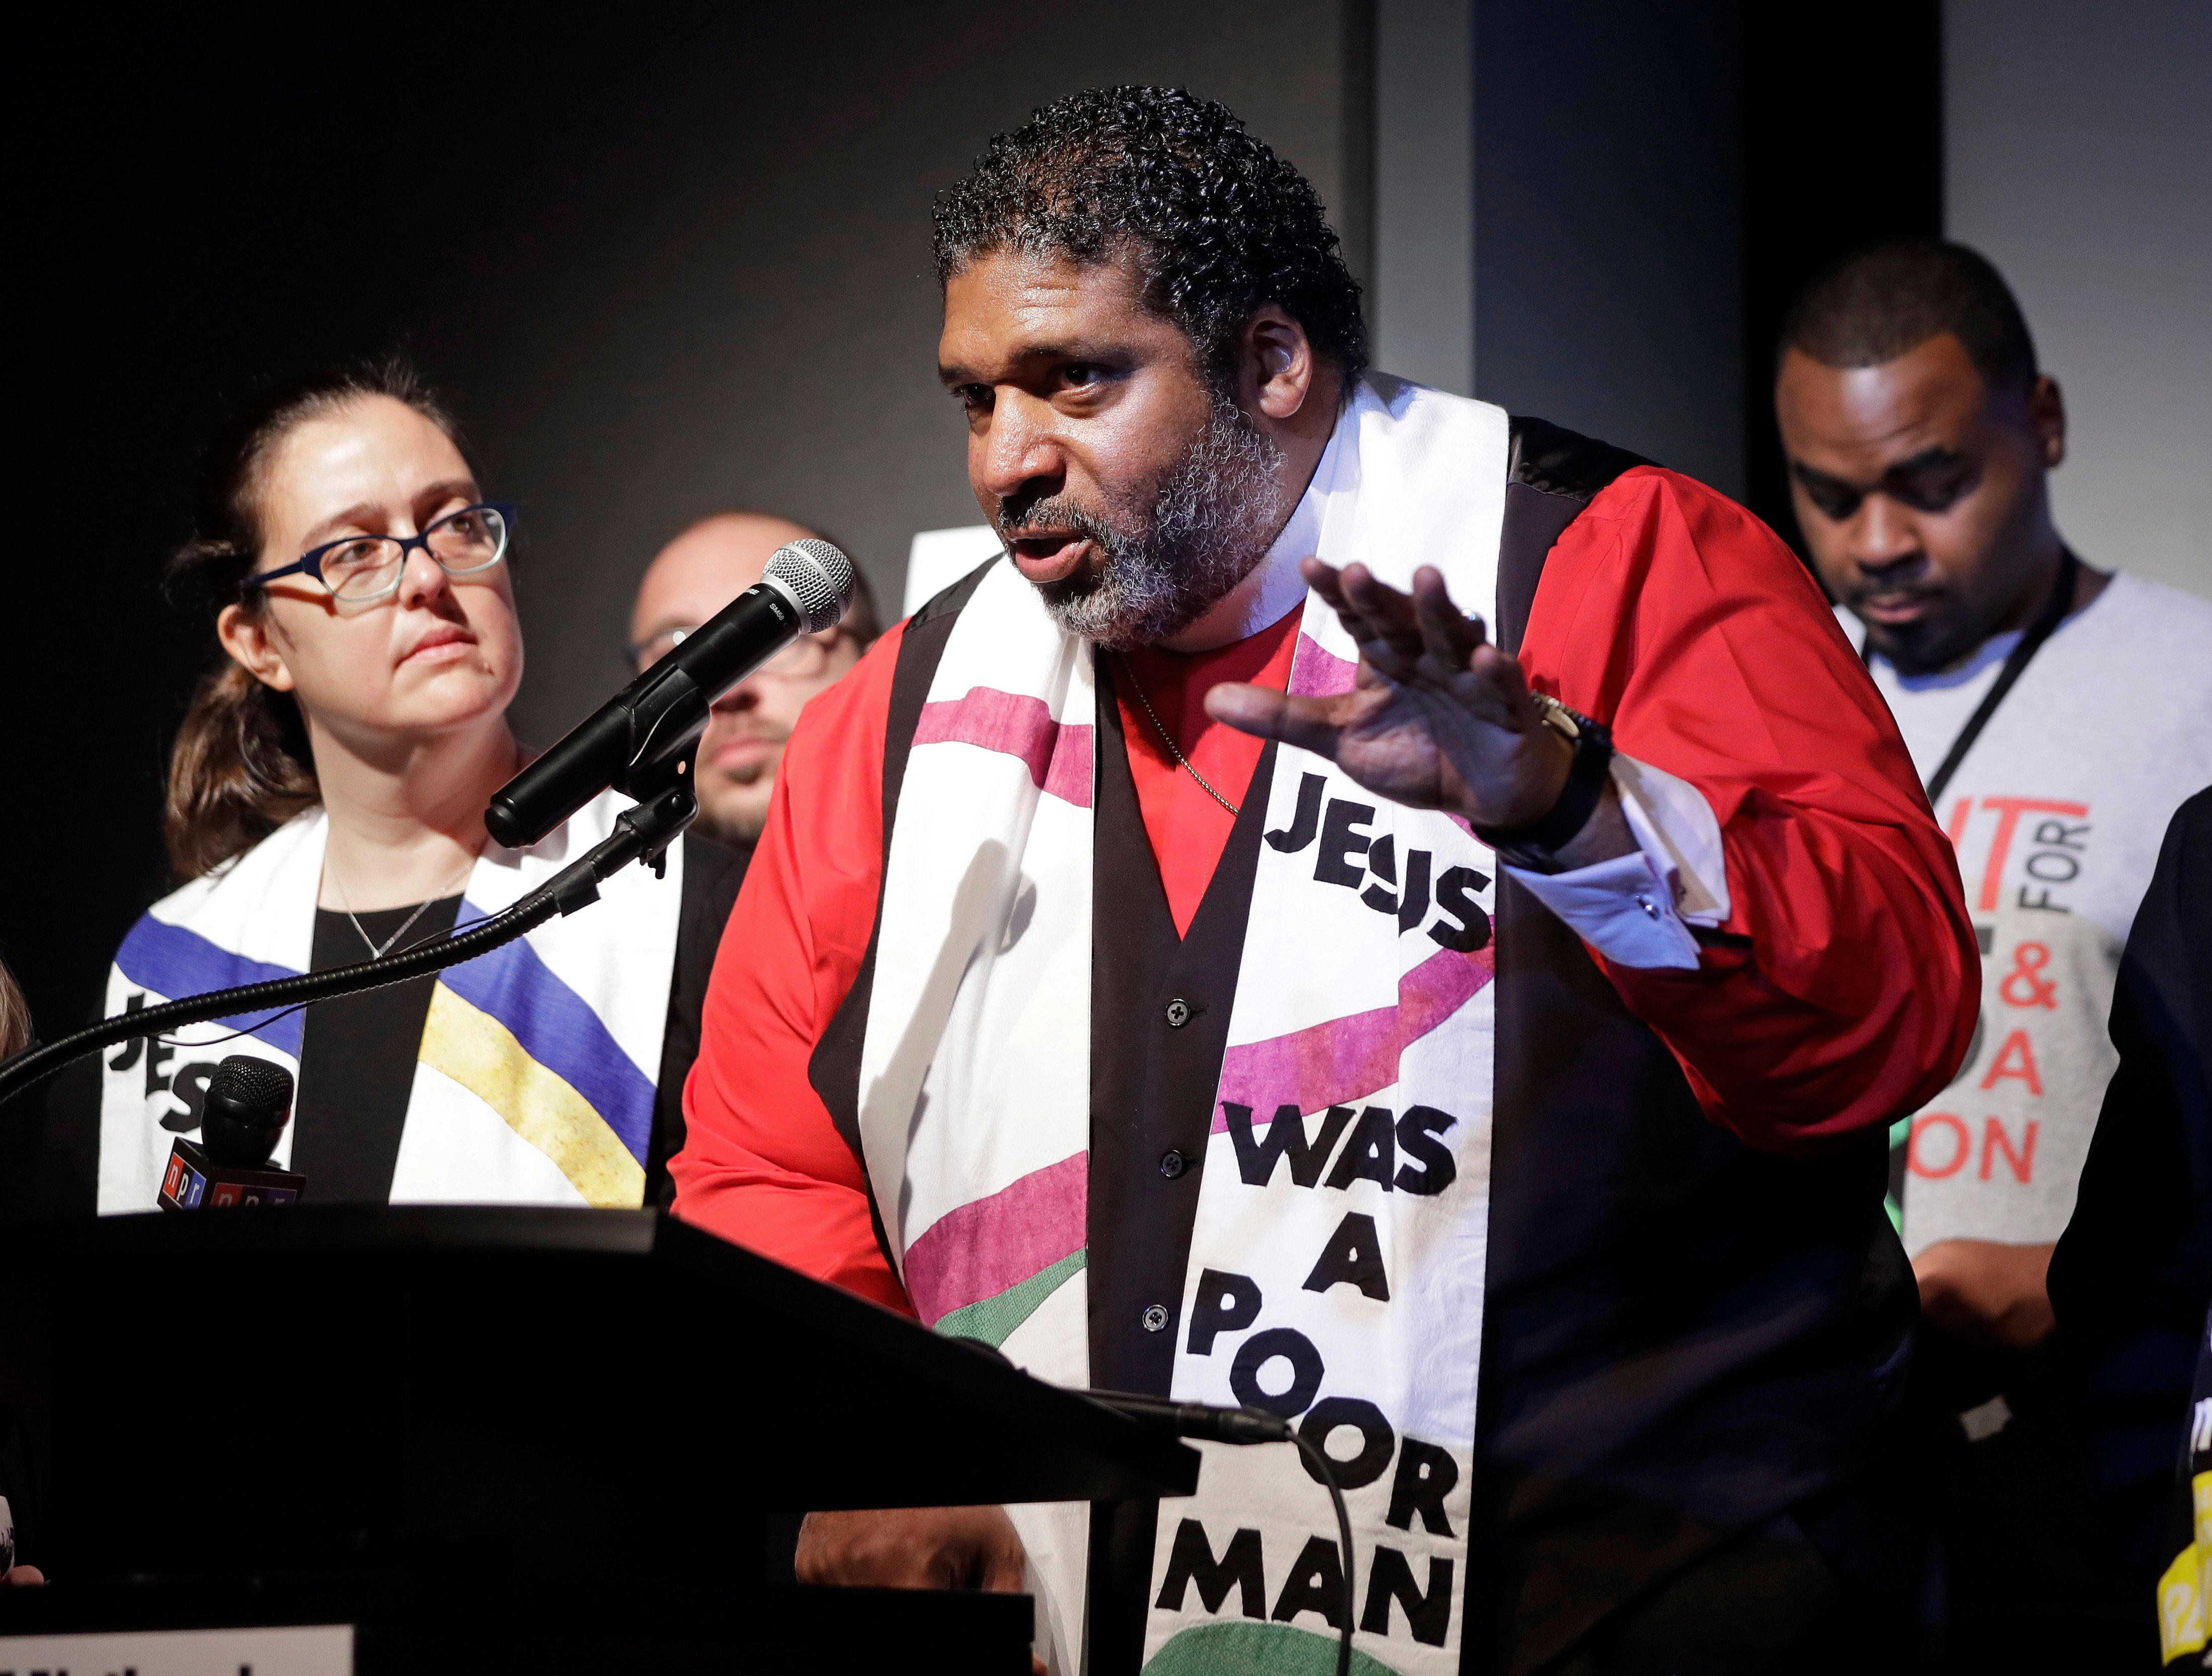 """The Rev. <a href=""""https://www.huffingtonpost.com/topic/rev-william-barber"""" target=""""_blank"""">William J. Barber II</a>is a"""